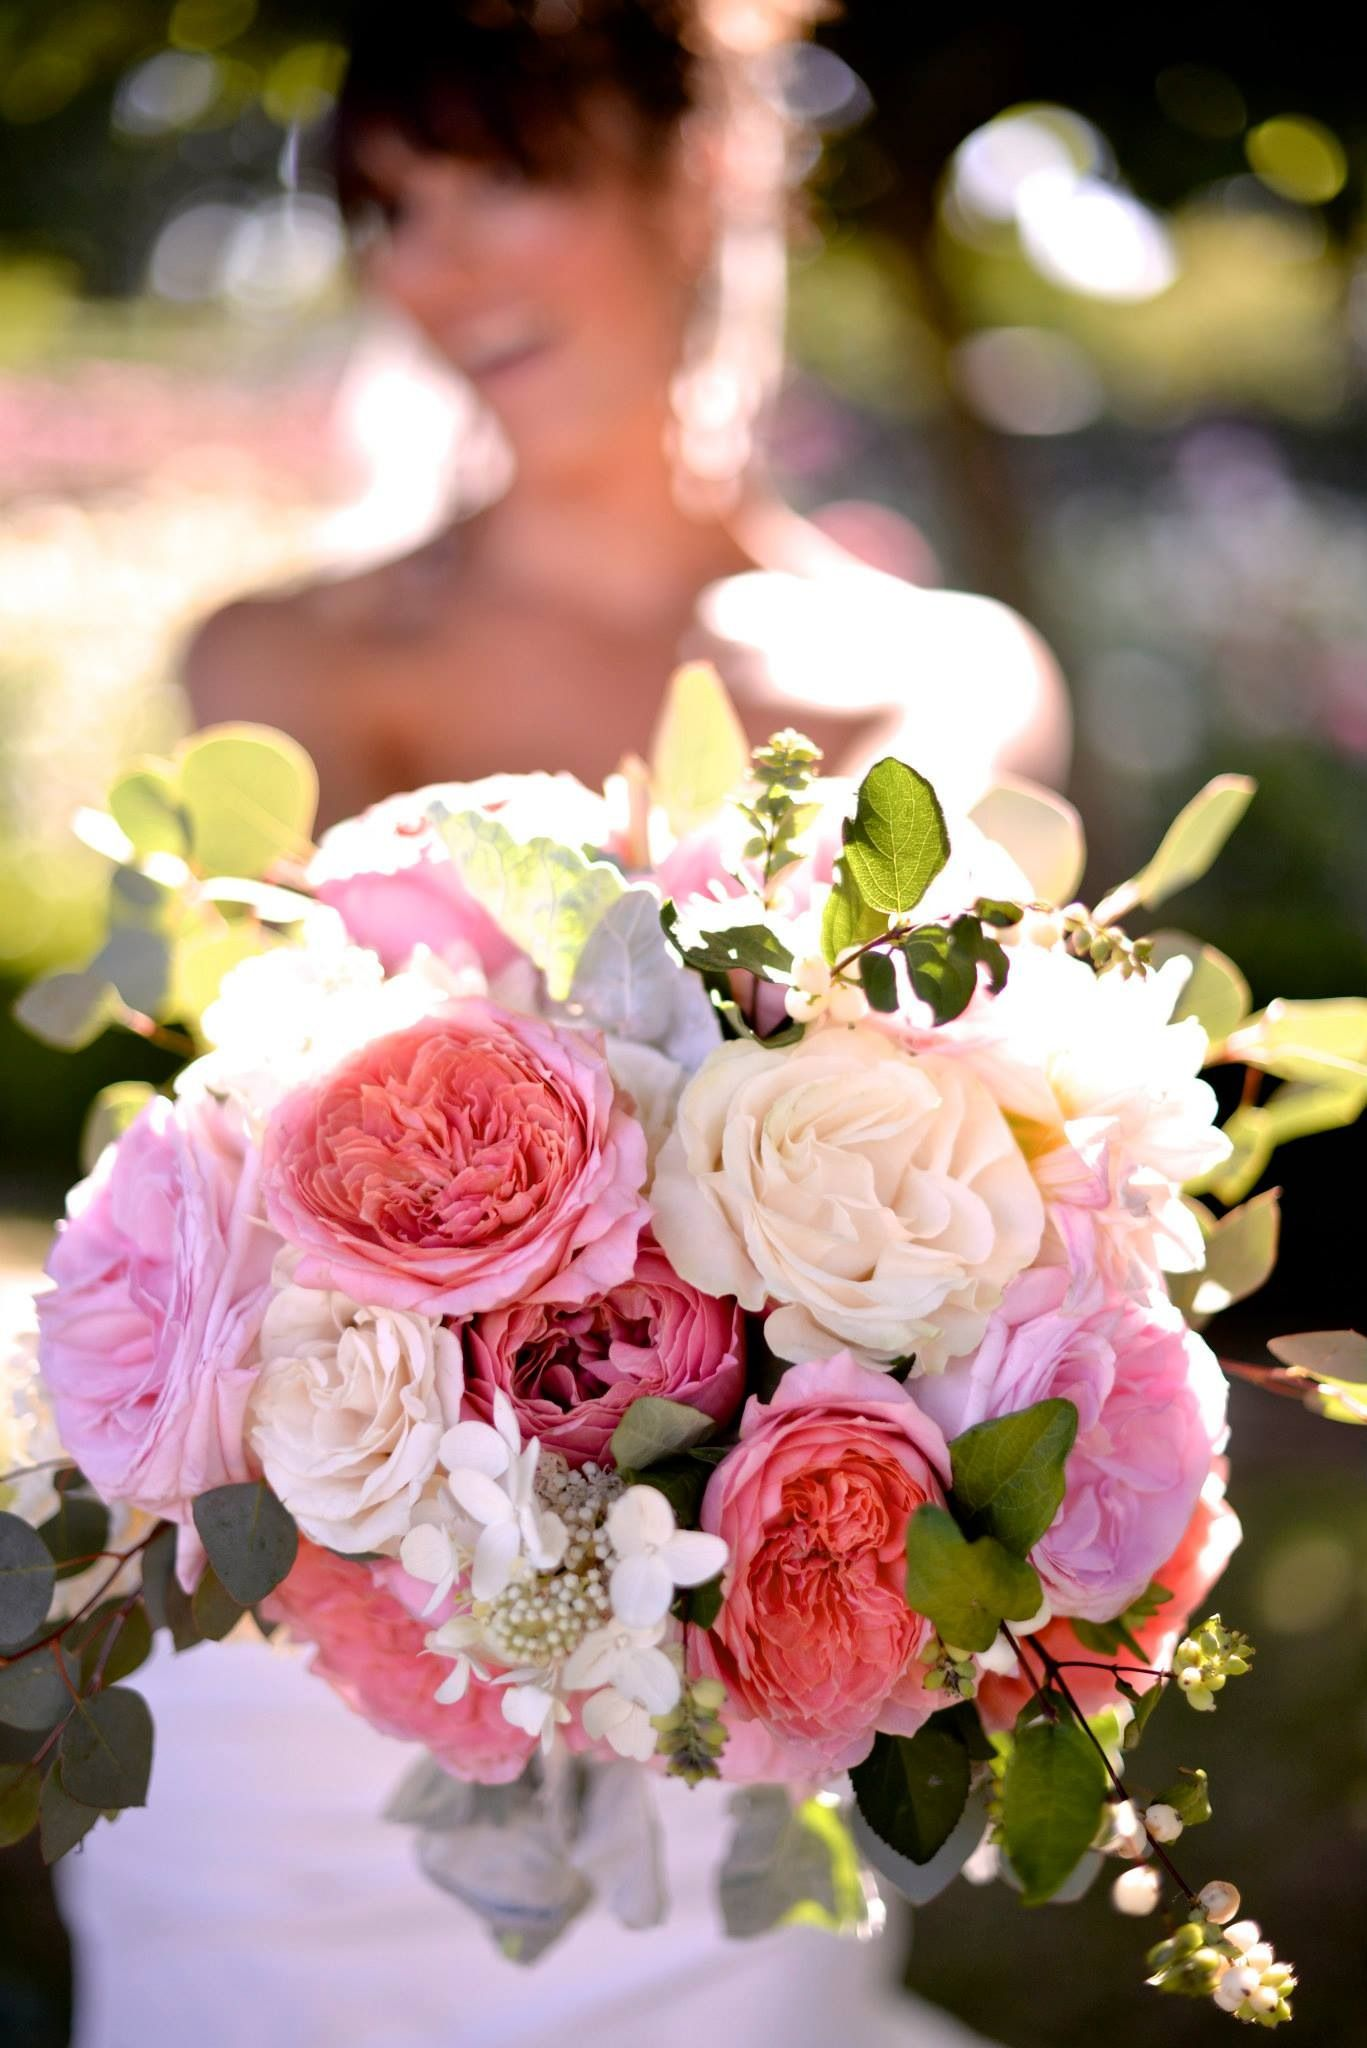 My wedding bouquet from my August wedding. Pink and white roses with ...